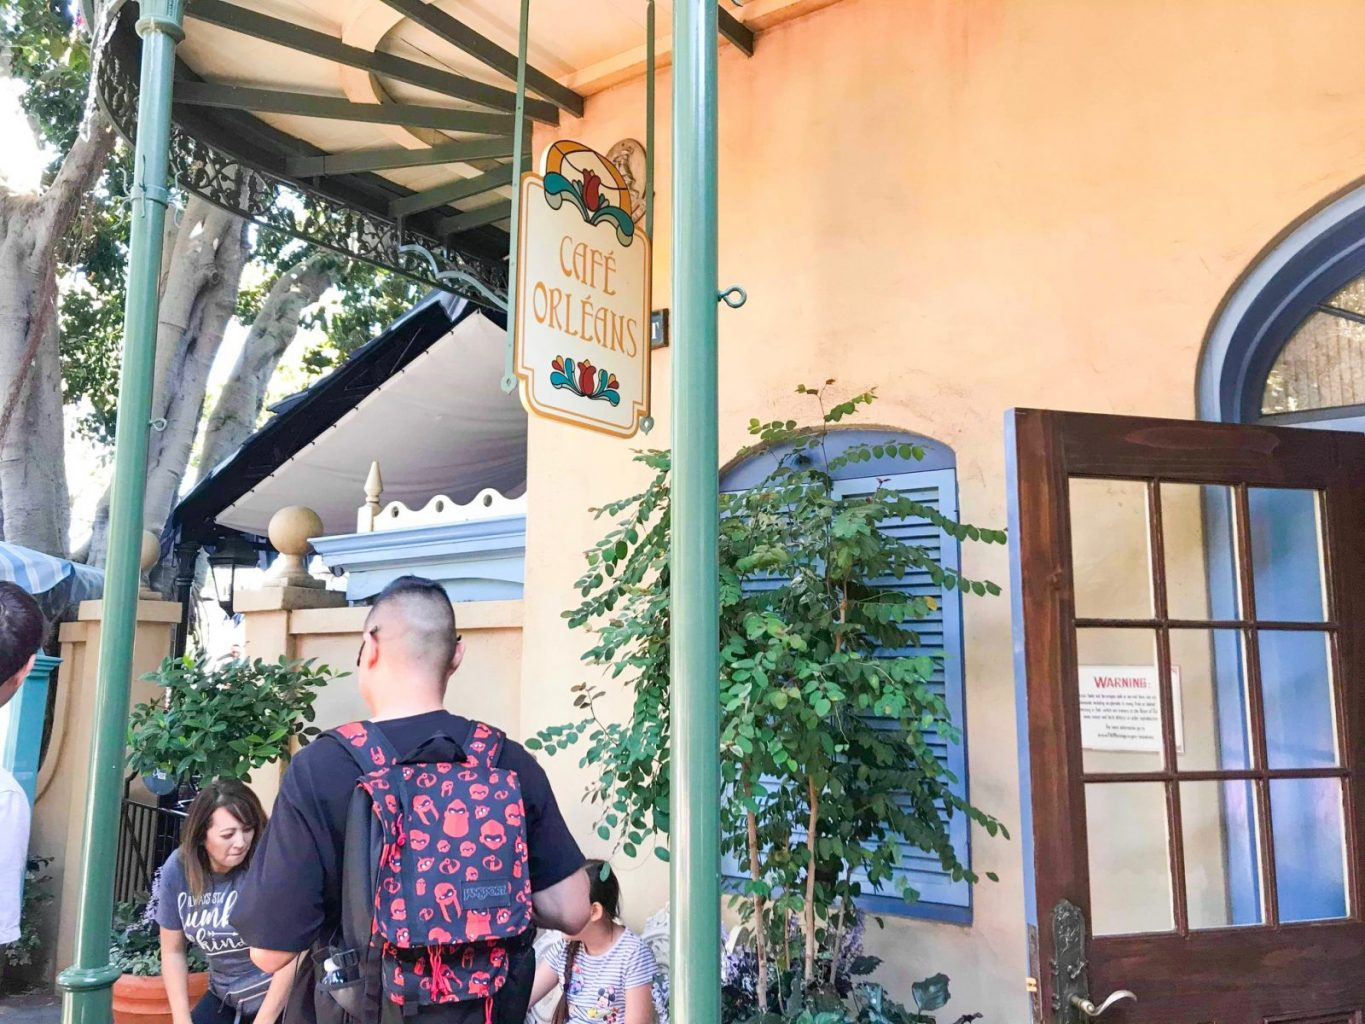 Outside Cafe Orleans, a great Disneyland restaurant to try